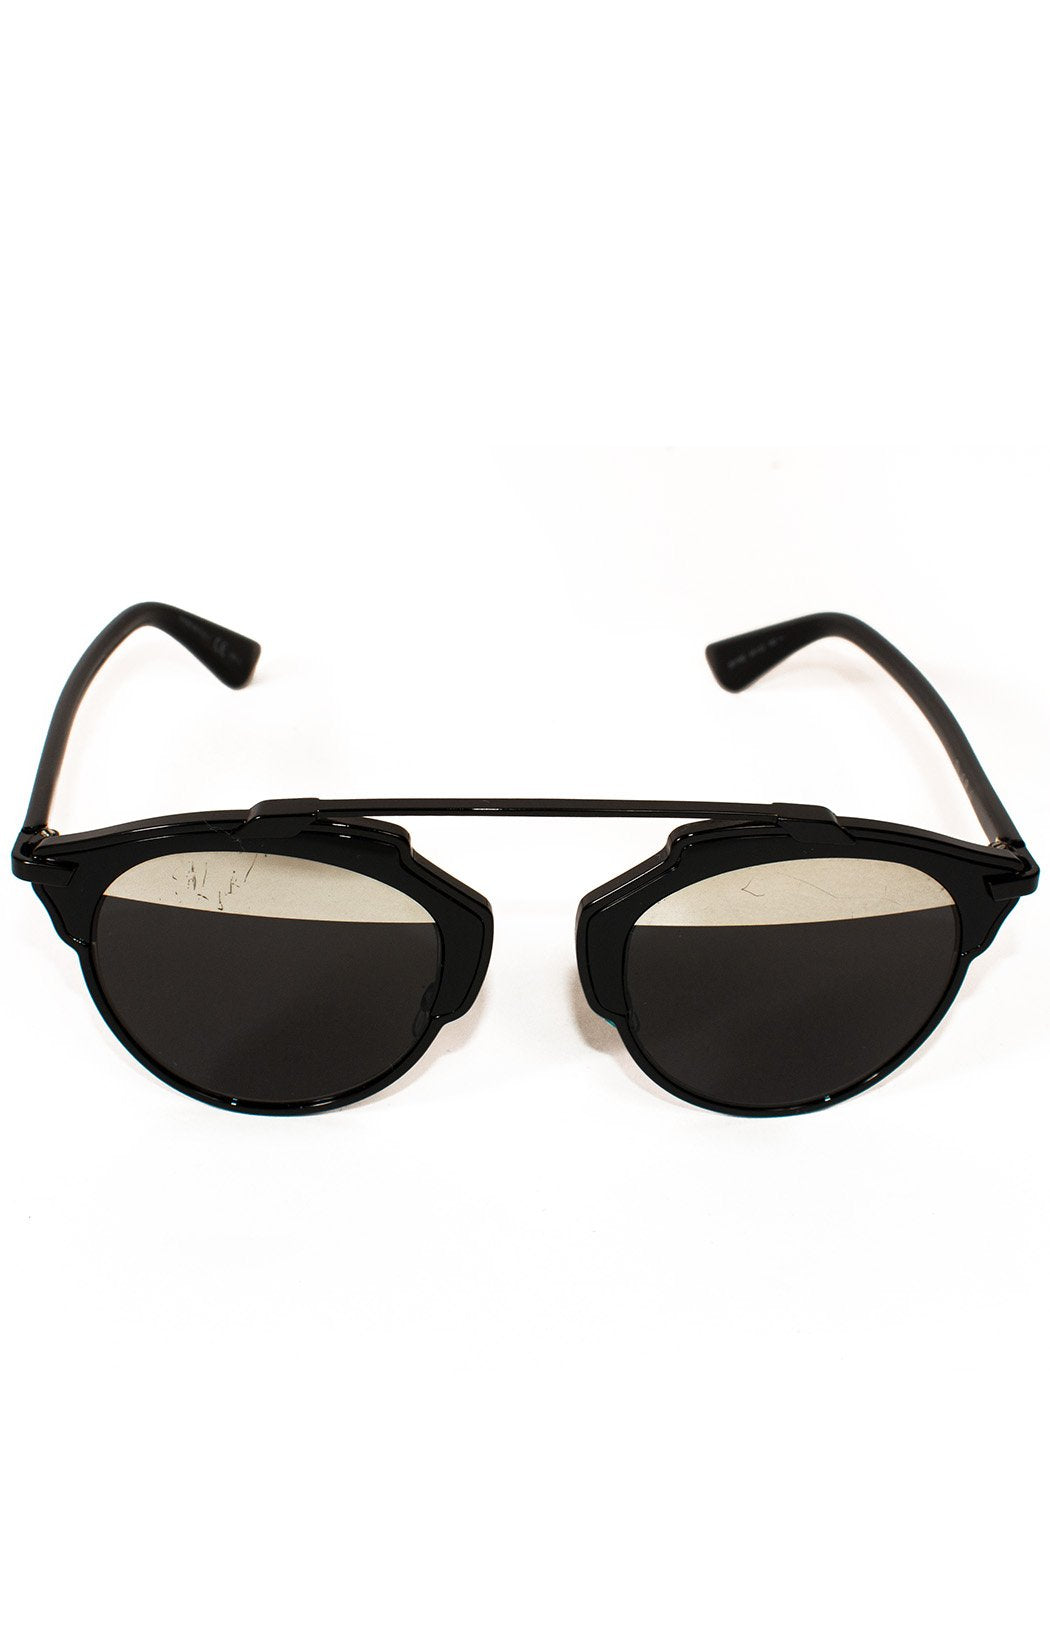 "Front view of CHRISTIAN DIOR  Sunglasses  Size: H 2"", 5"" W"